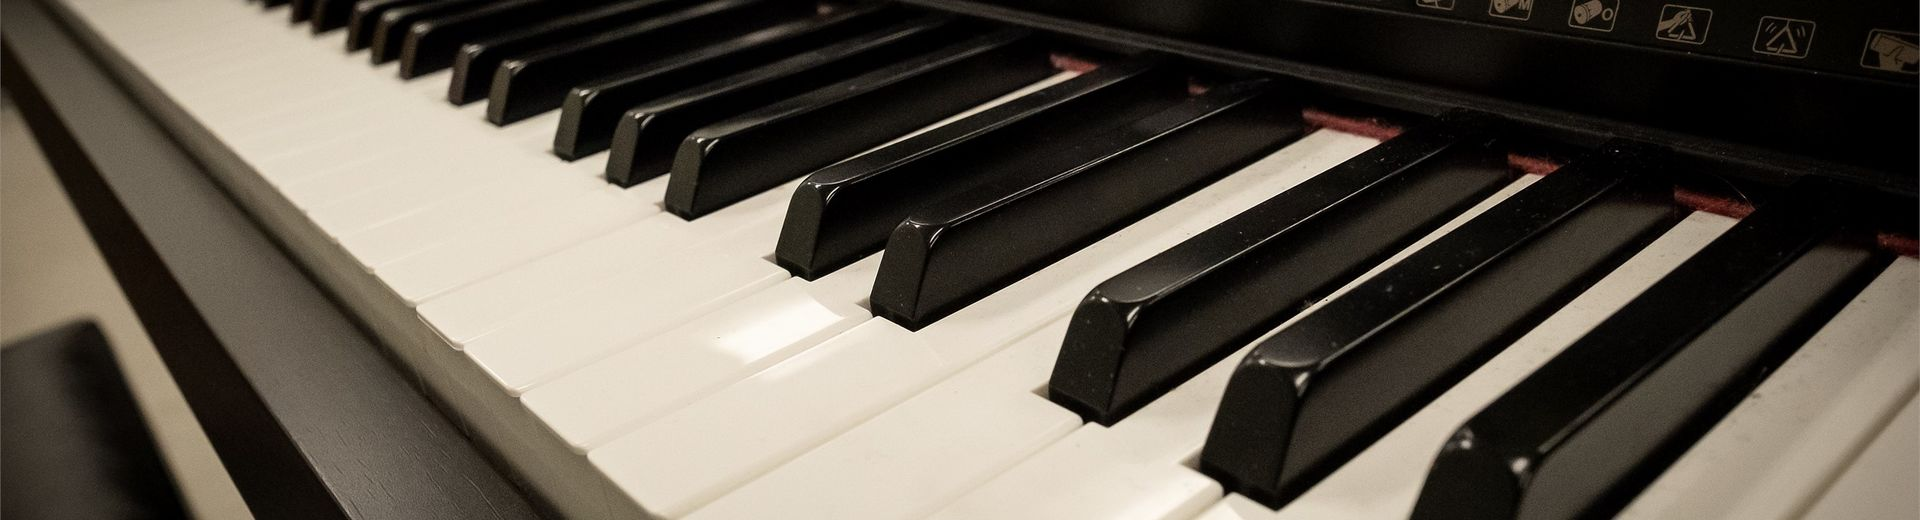 Keys on a piano.